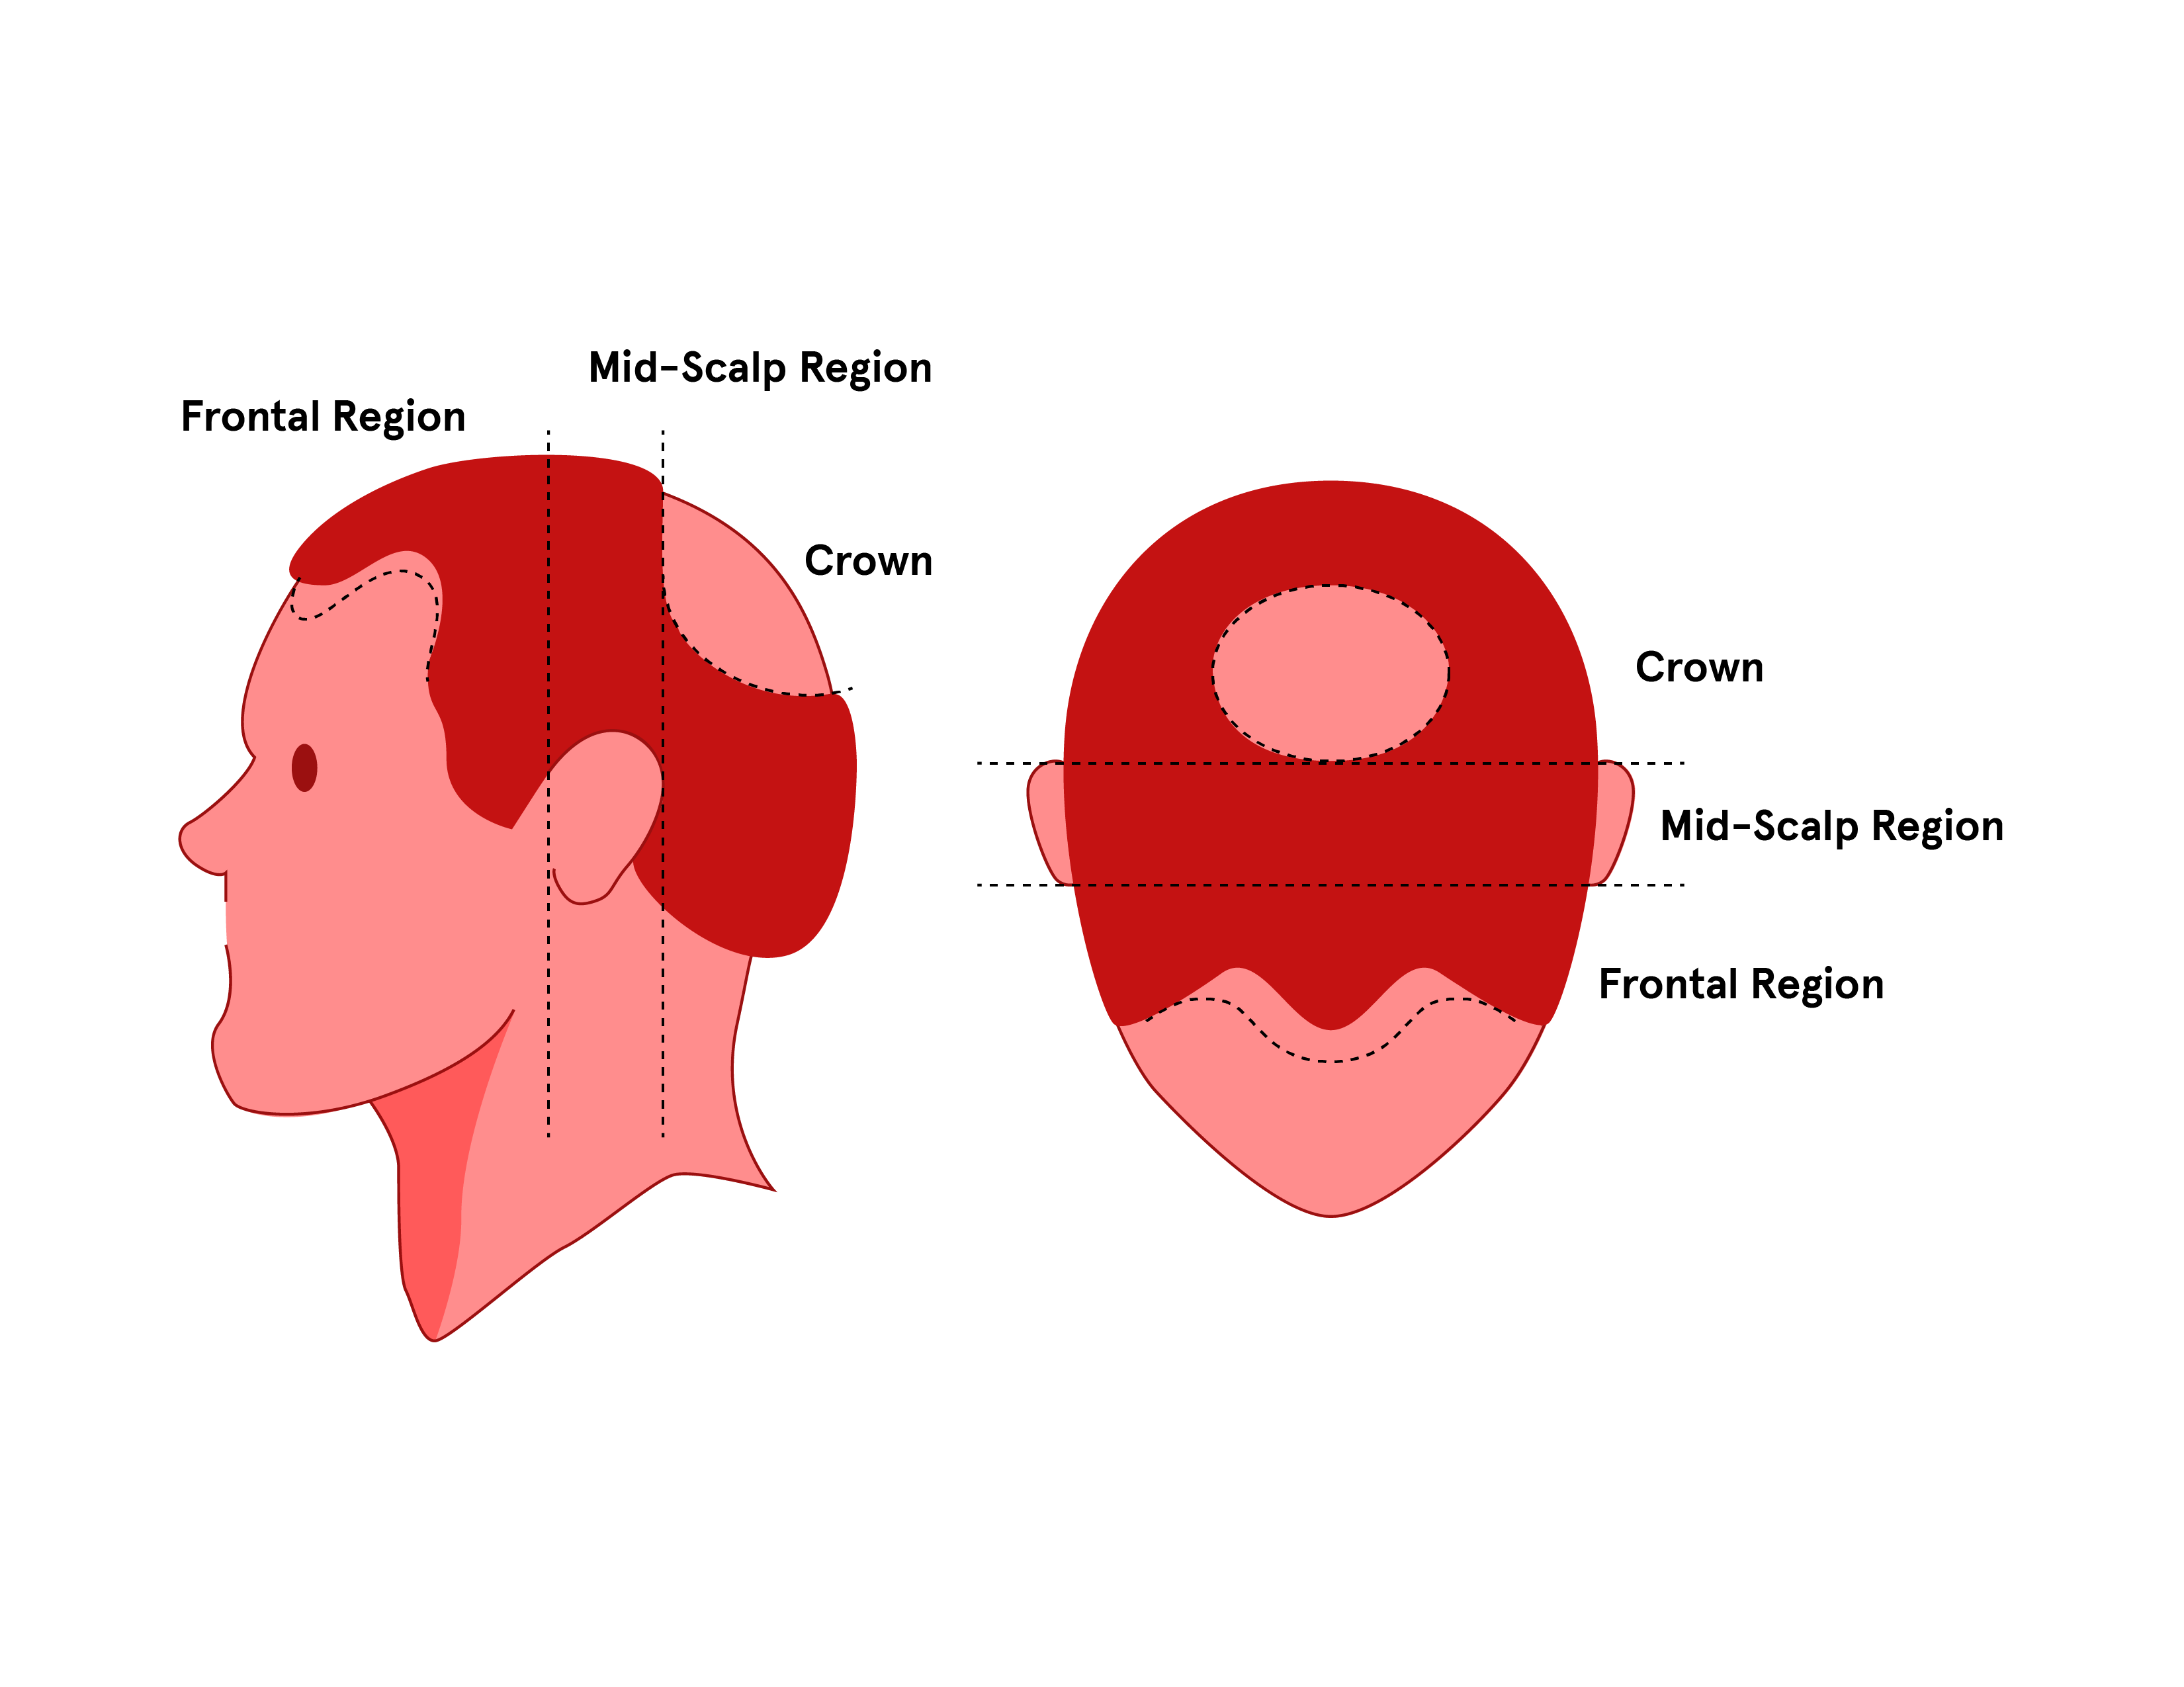 parts of the head illustration